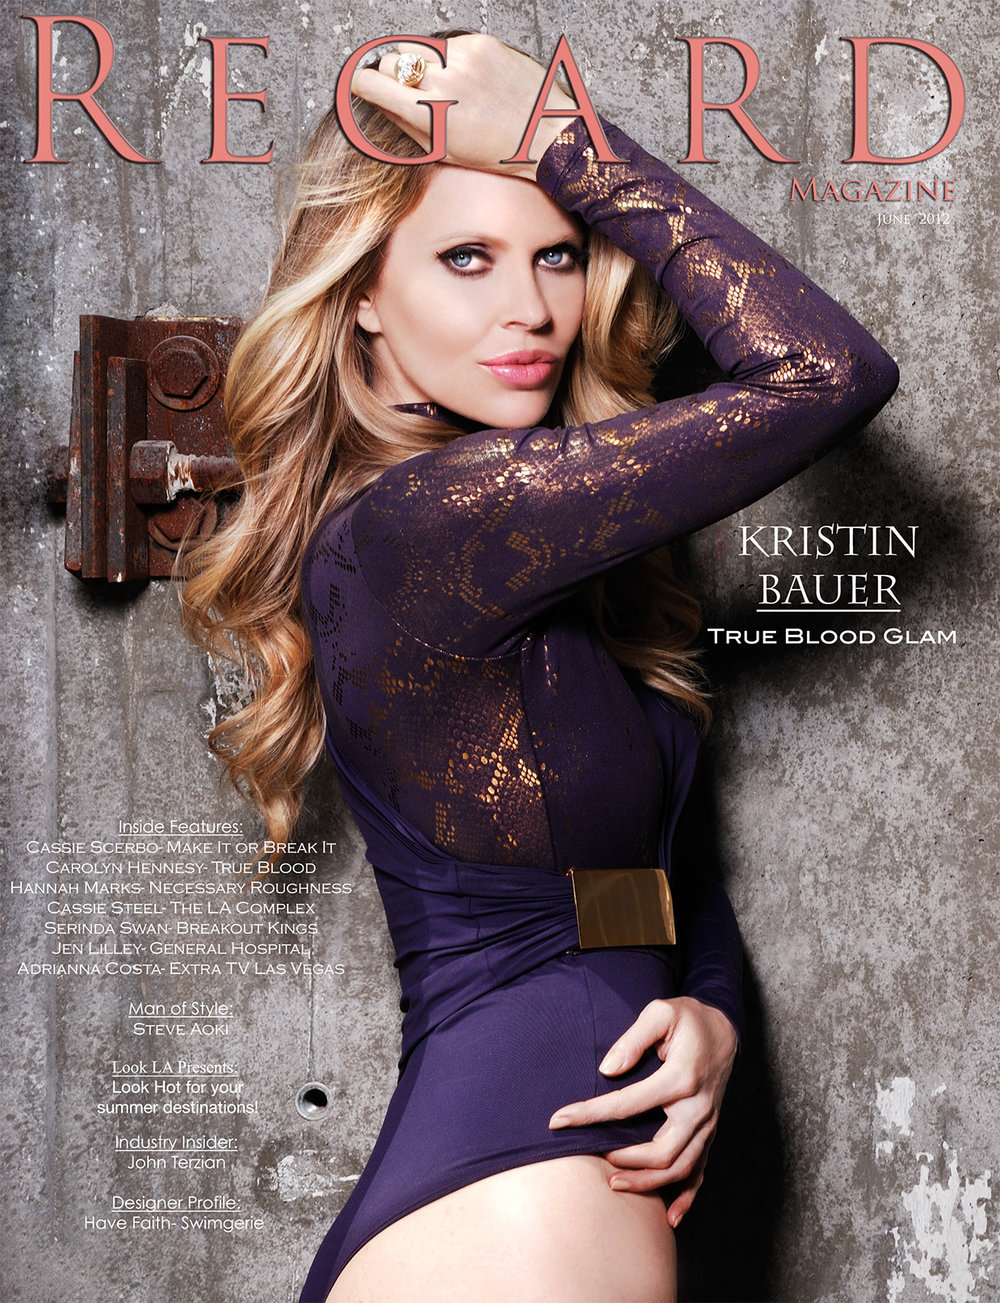 Regard Magazine Issue 14- June 2012-1.jpg